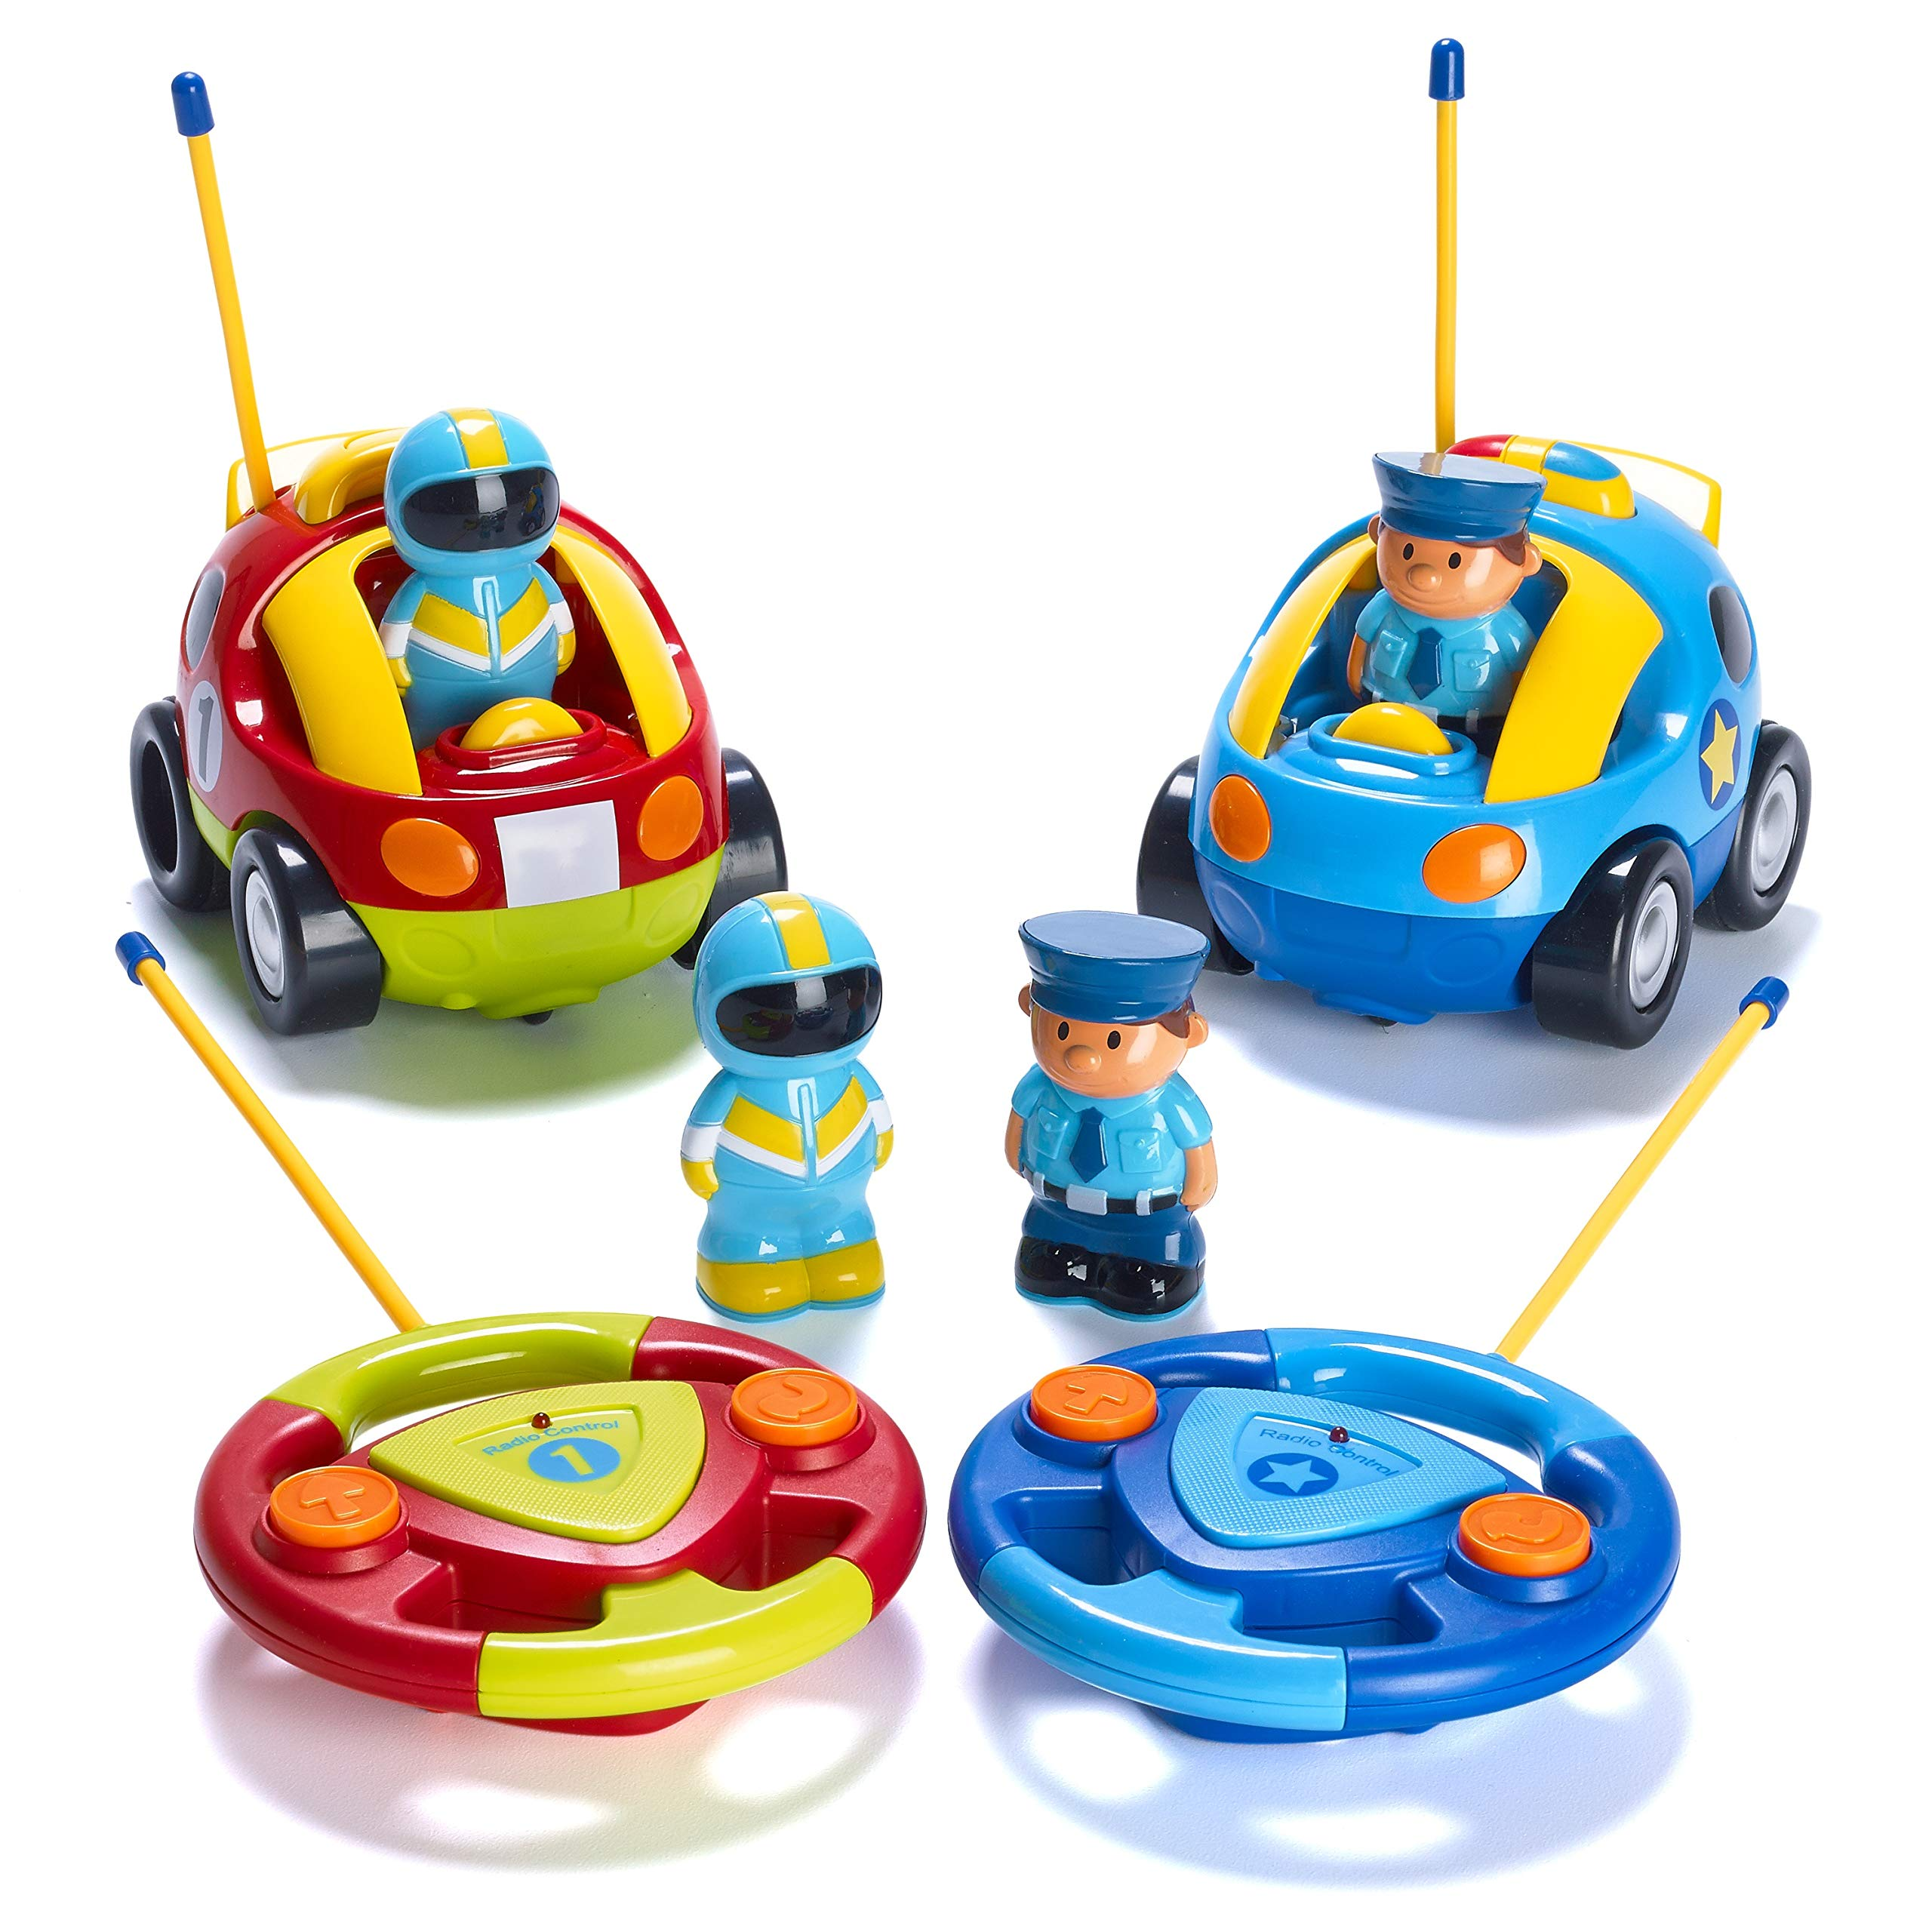 Prextex Pack of 2 Cartoon R/C Police Car and Race Car Radio Control Toys for Kids- Each with Different Frequencies So Both Can Race Together by Prextex